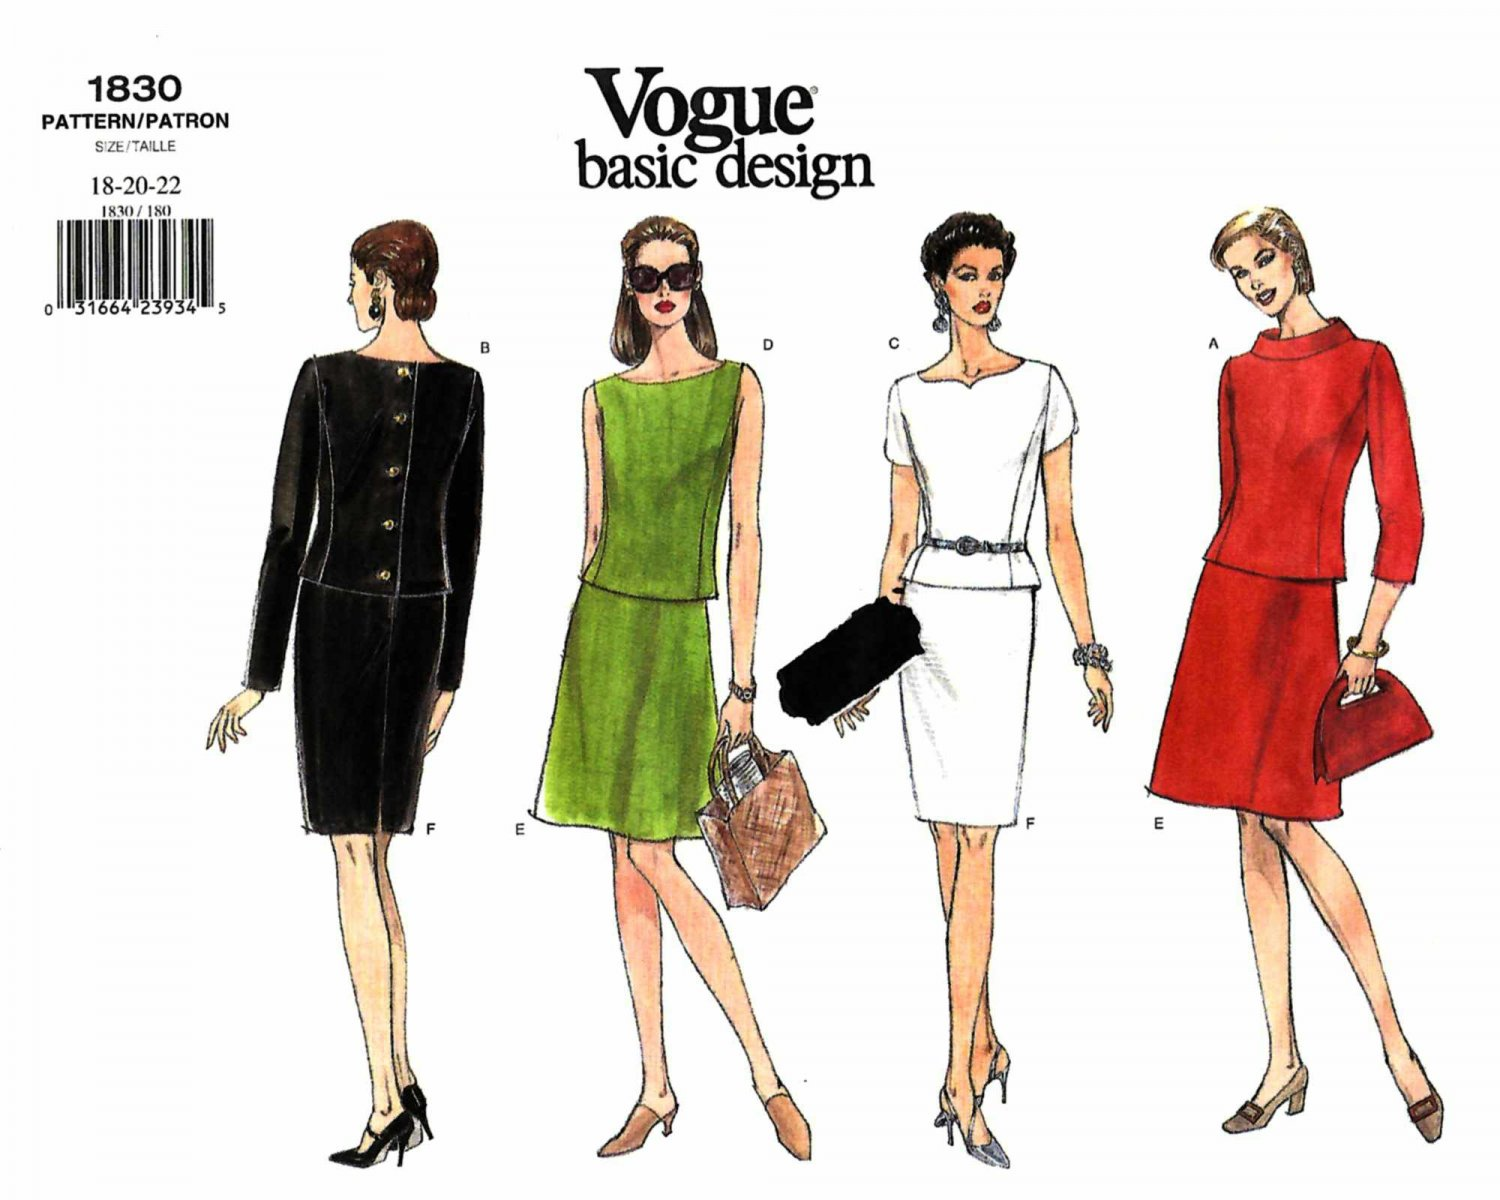 Vogue Sewing Pattern 1830 Misses Size 18-22 Easy Basic A-Line Straight Skirts Tops